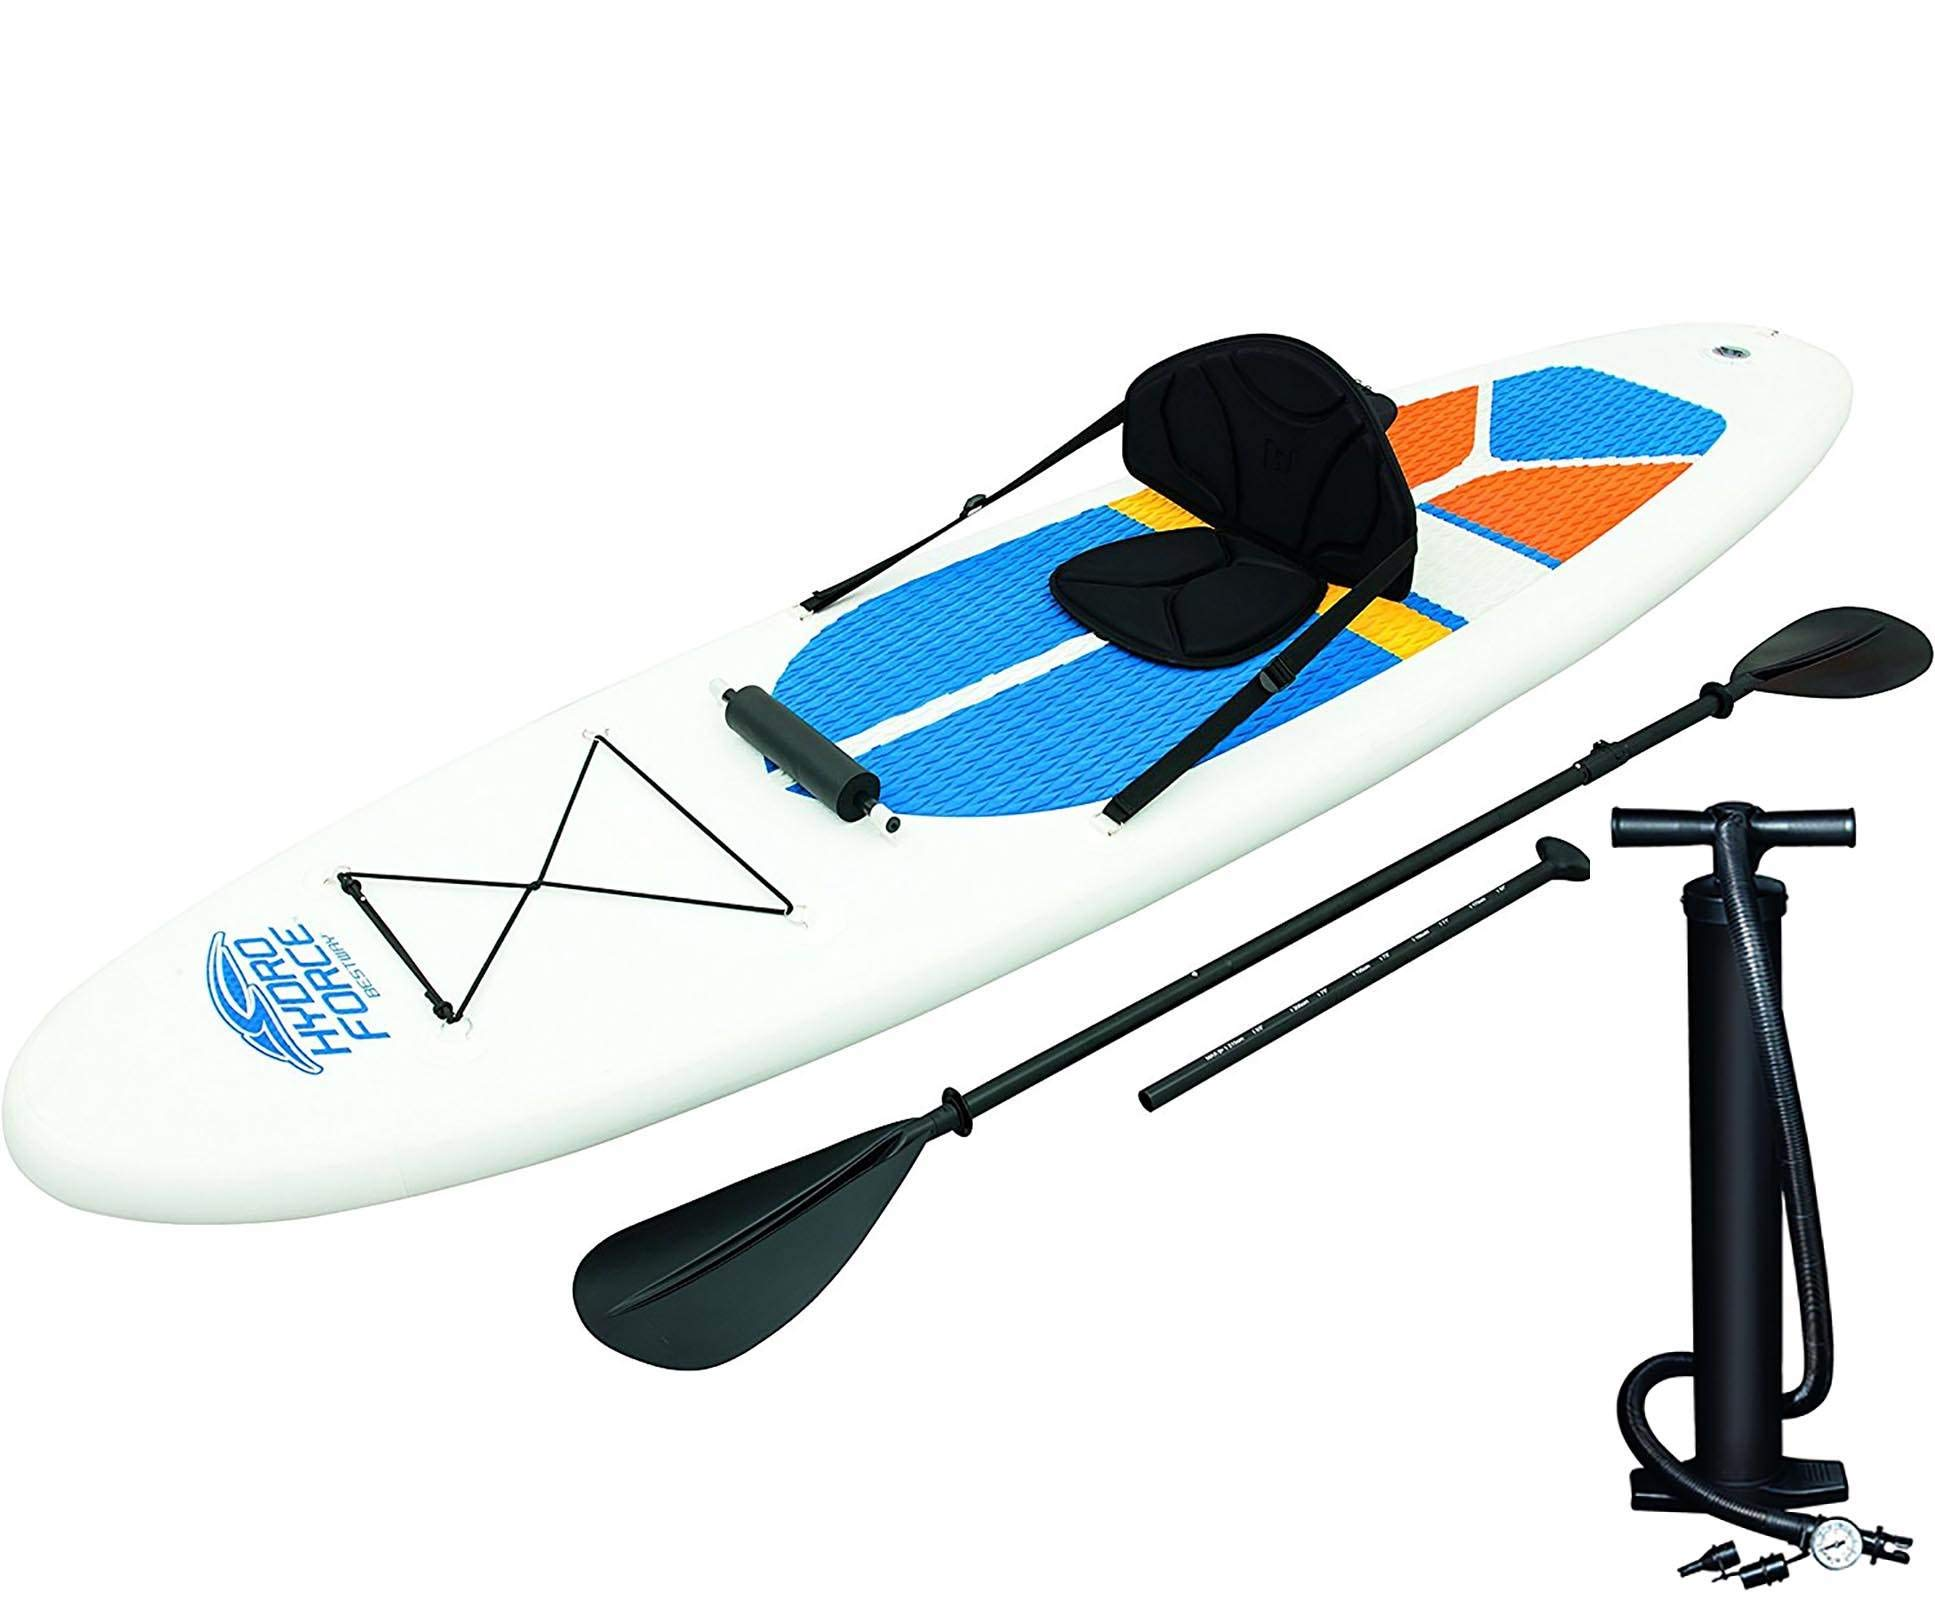 HydroForce White Cap Inflatable Stand Up Paddleboard SUP and Kayak 10' by Bestway